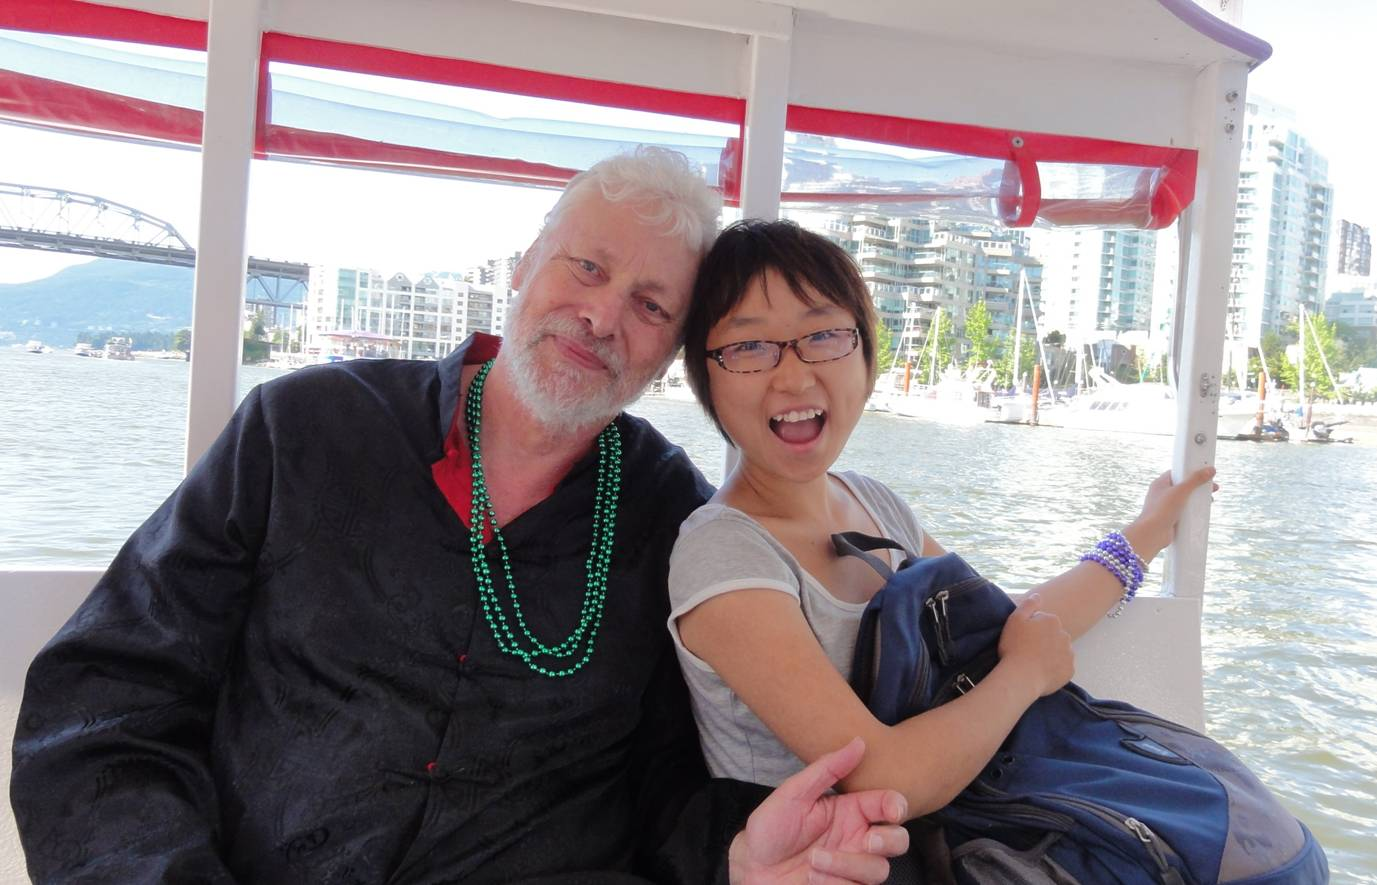 Picture:  David and Panda on the False Creek ferry.  Vancouver, B.C.